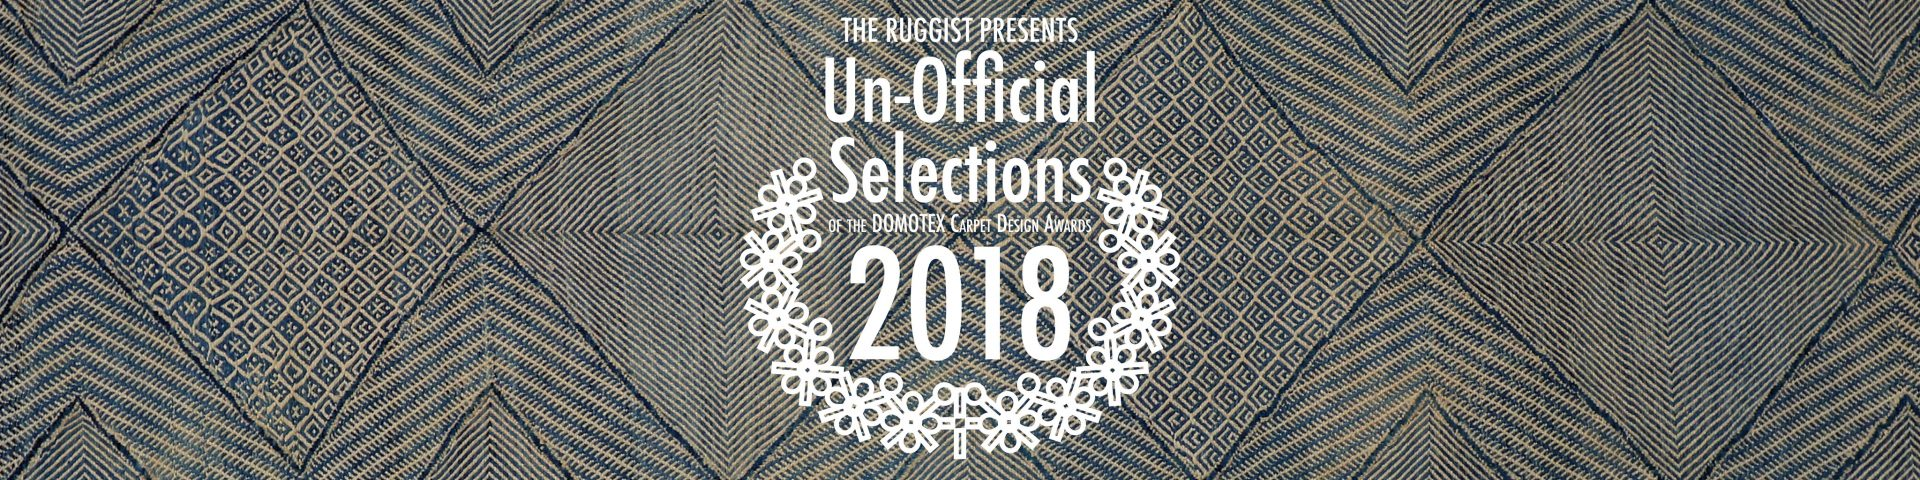 The Ruggist presents Un-Official Selections of the DOMOTEX Carpet Design Awards 2018. | Image of Moroccan Kilim courtesy of Bazar de Sud via DOMOTEX. | The Ruggist